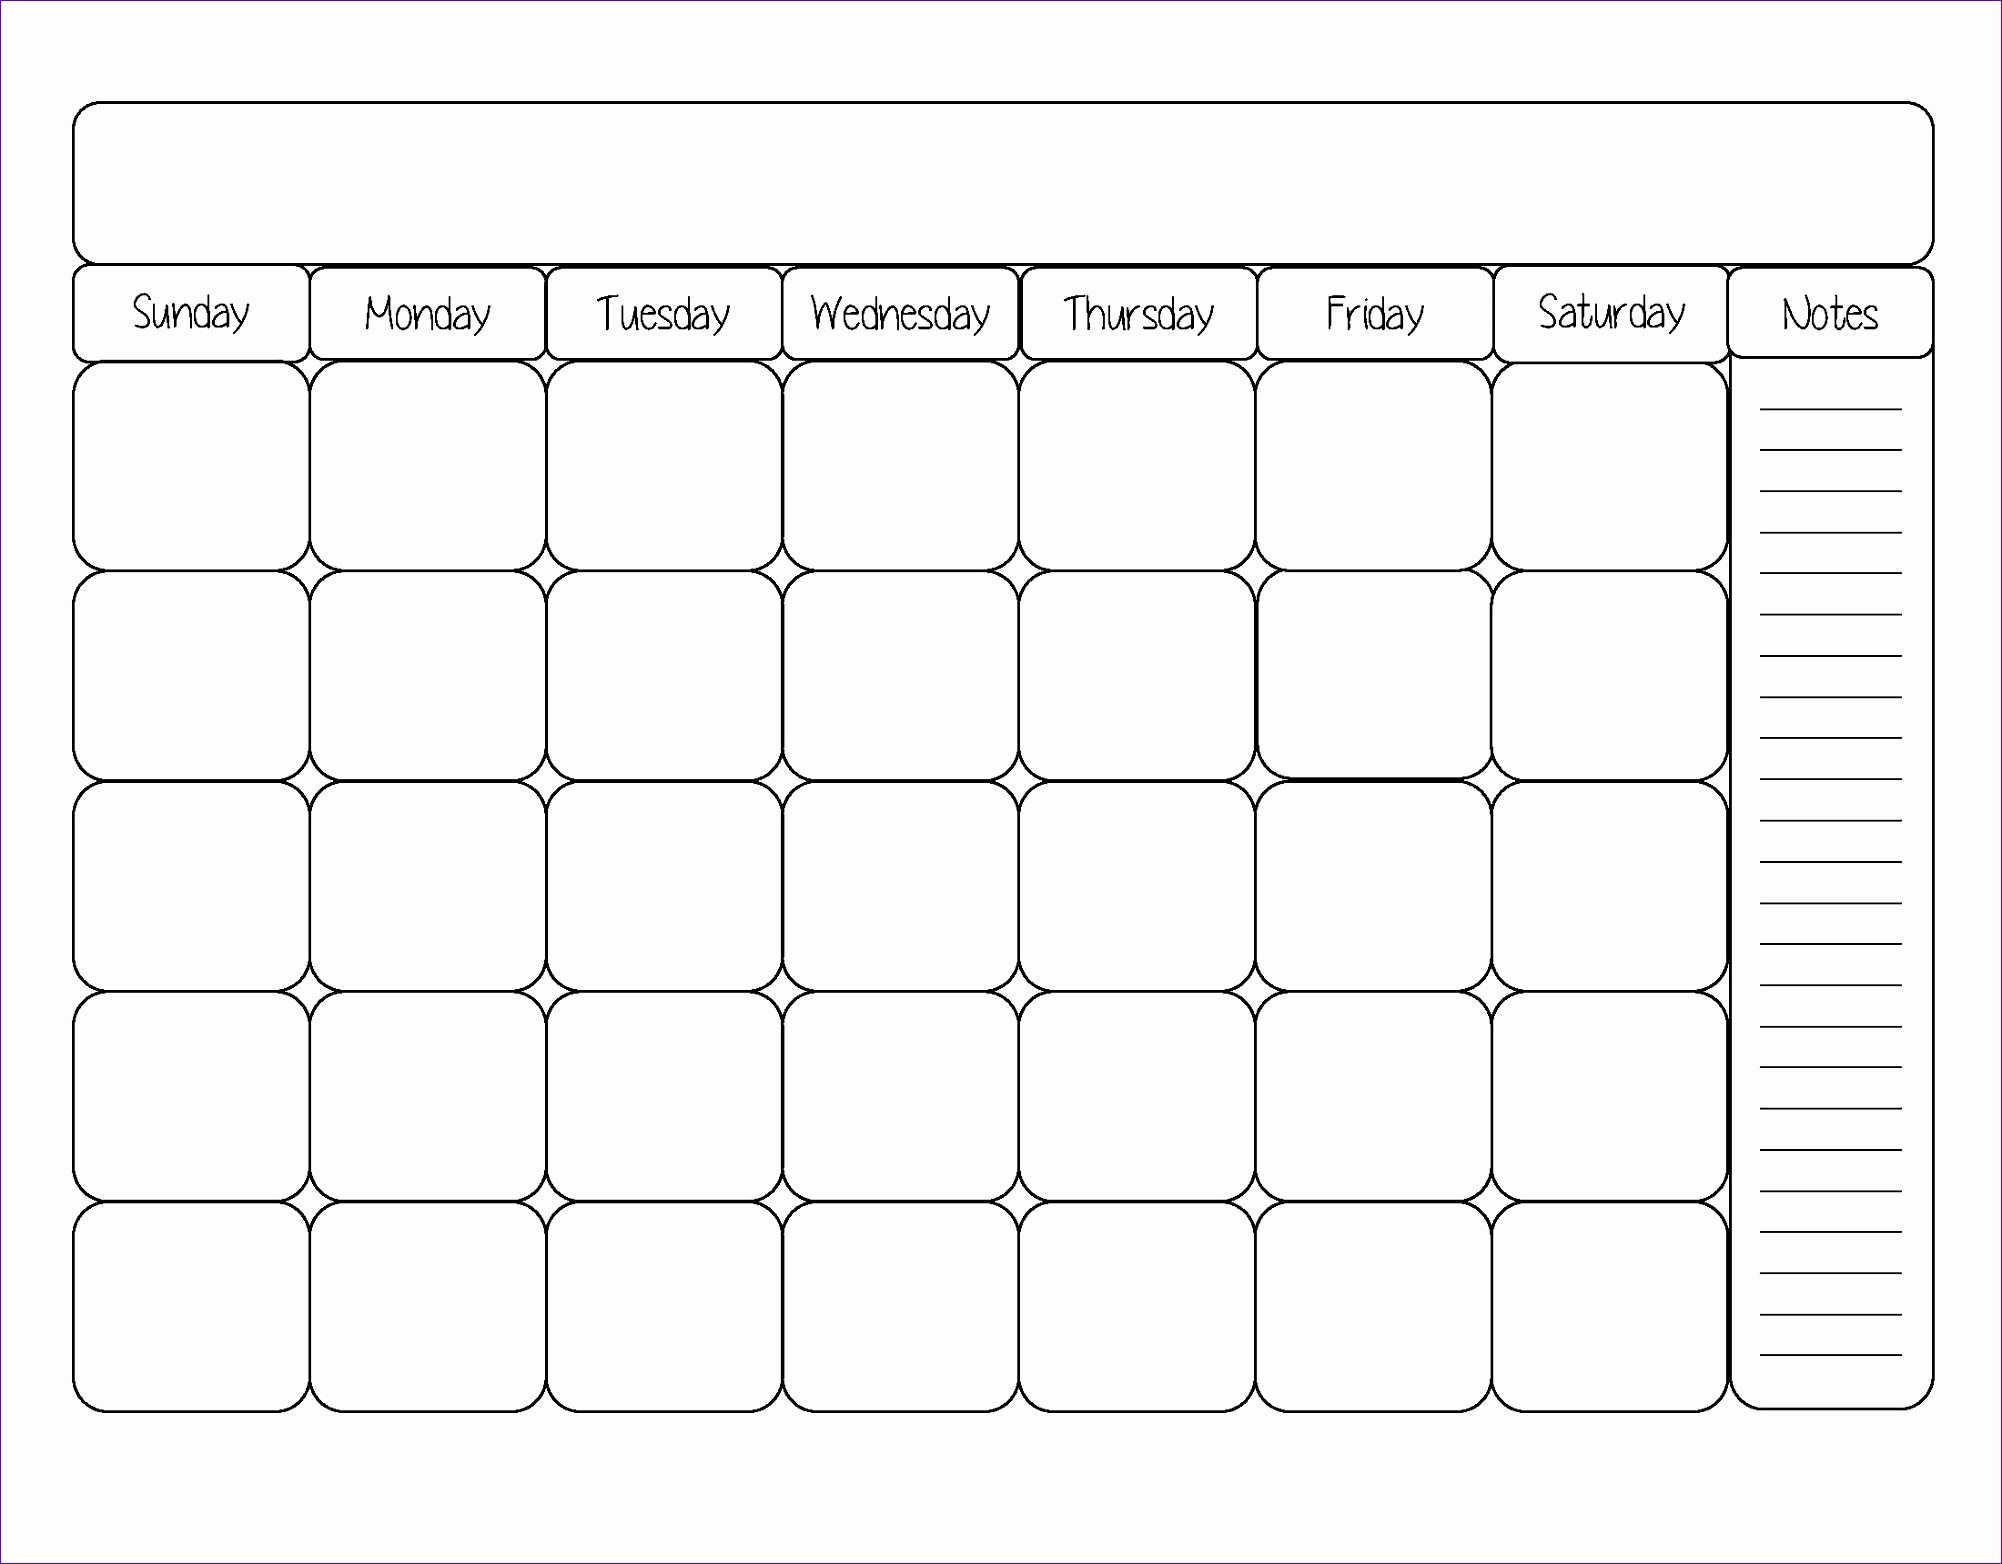 Raci Model Template Excel Ksvgf Unique Calendar Templ Template